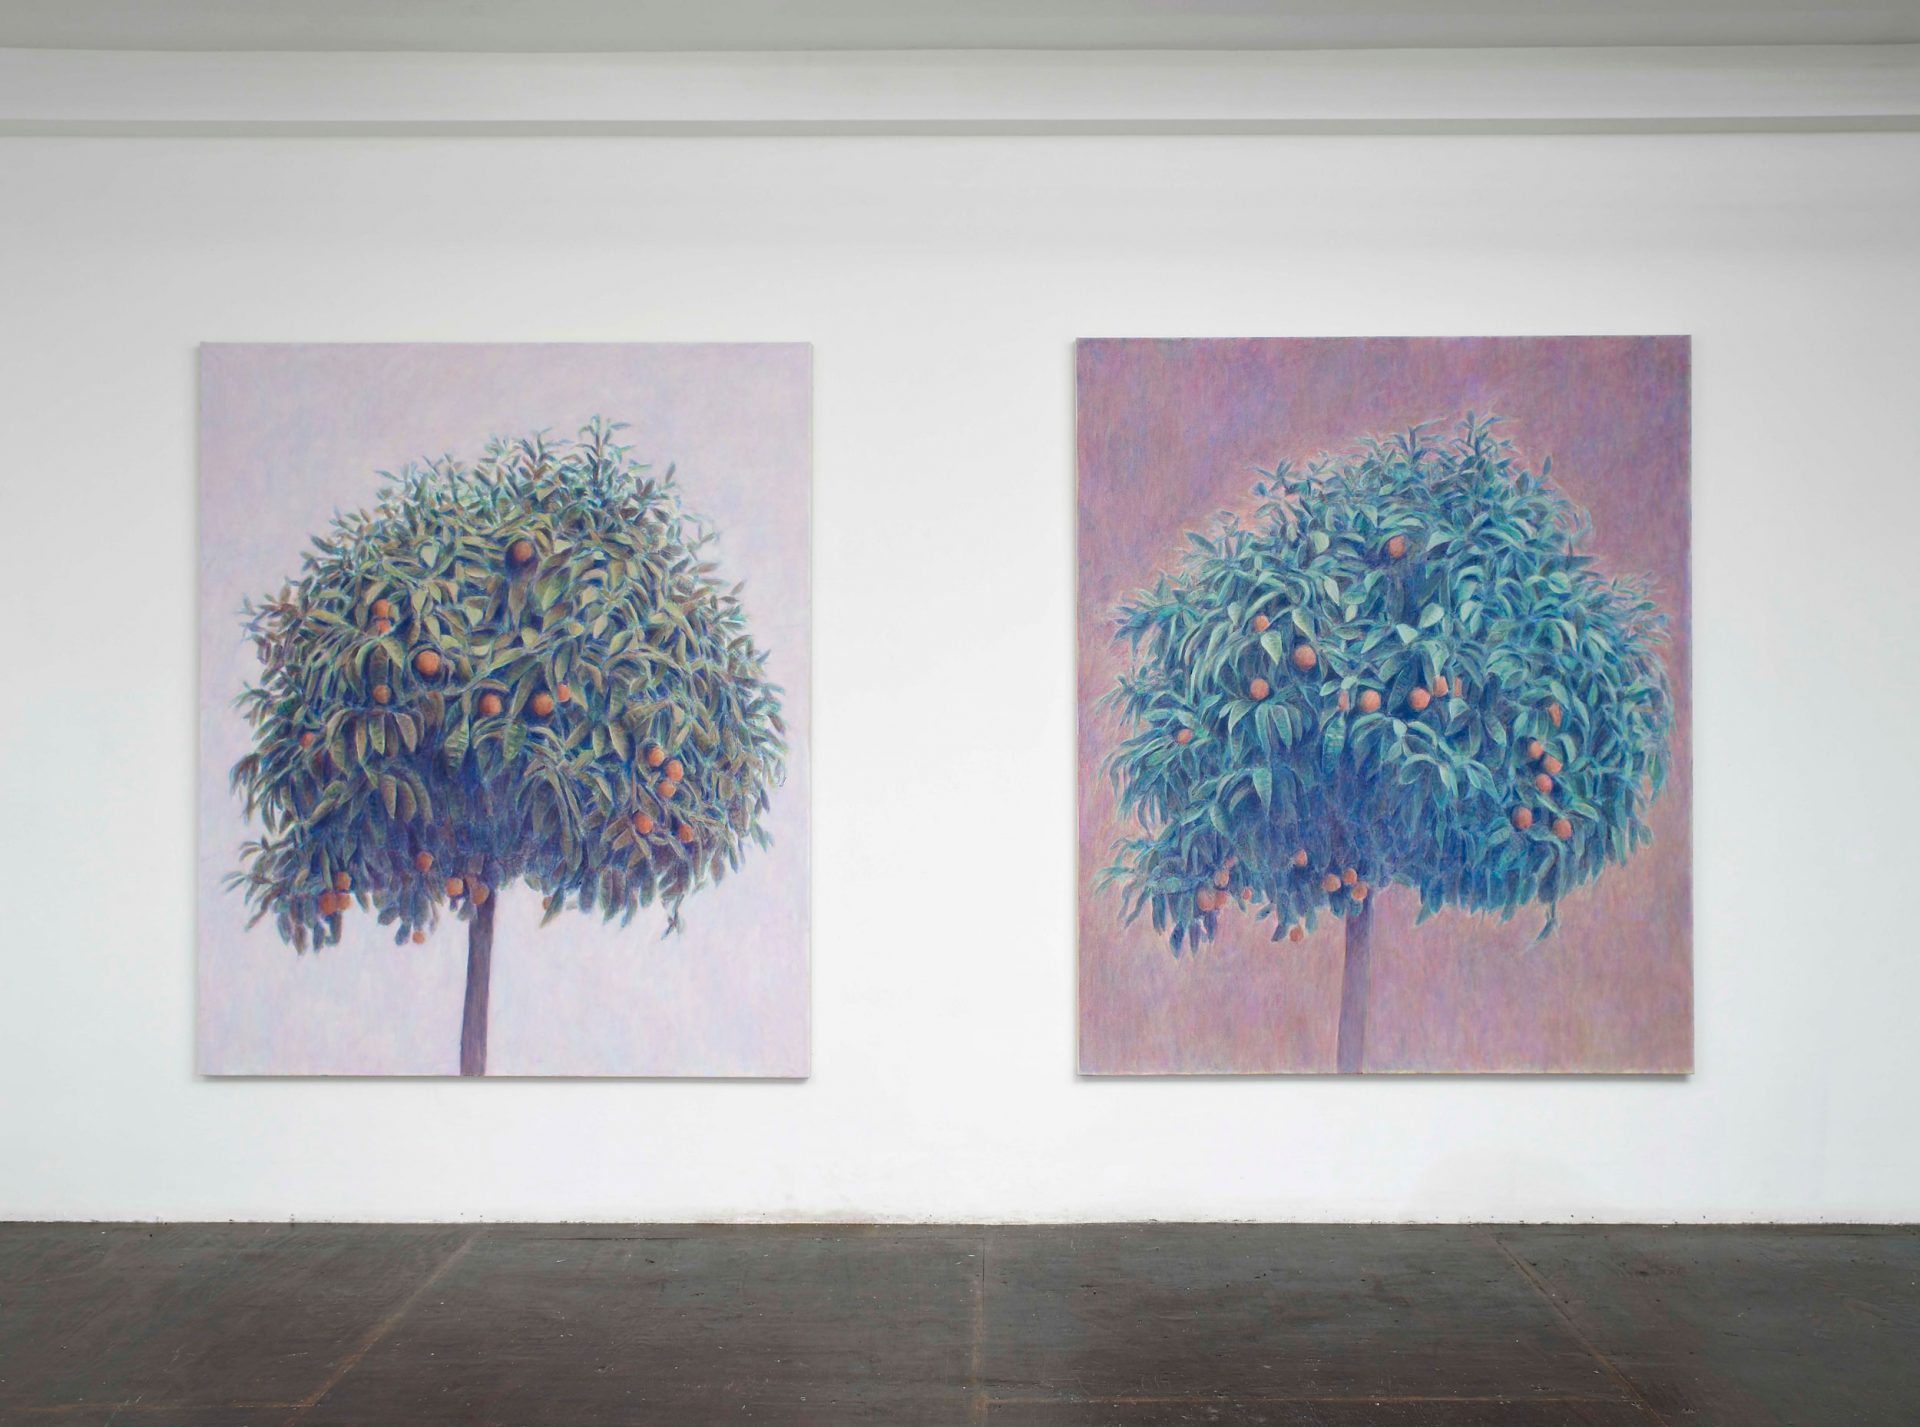 Bruno Pacheco: Three Orange Trees, A Box and Some Gloves, 2010